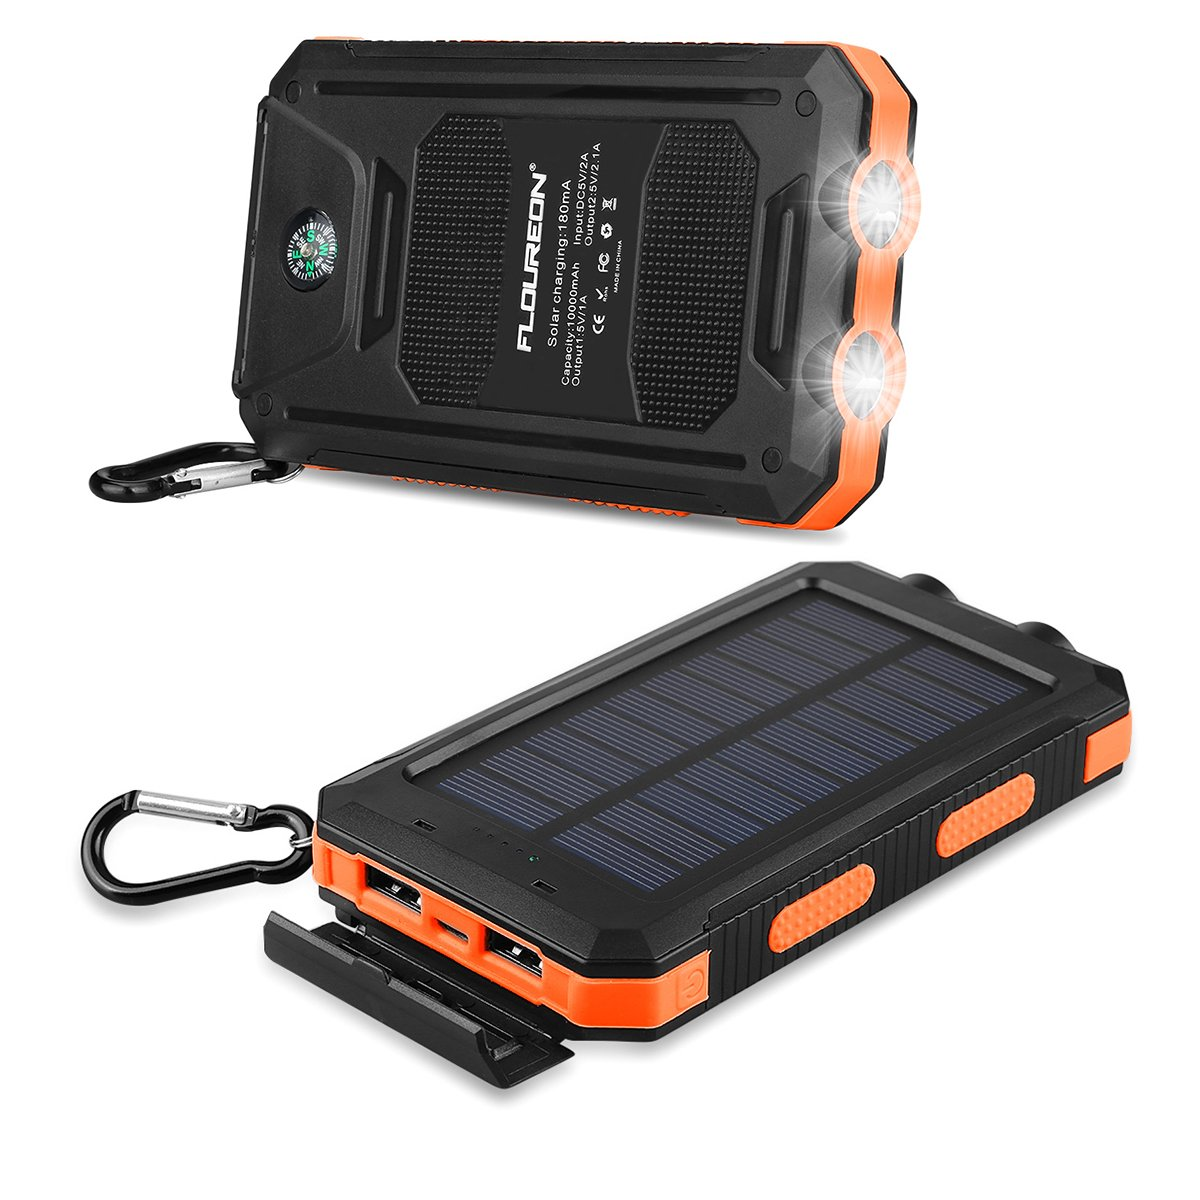 FLOUREON 10,000mAh Solar Charger Power Bank Portable Solar Powered Phone Charger with Dual LED Flashlight Super Bright External Battery Charger with Dual 1.0A/2.1A for iPhone 8/ 8 Plus/ X/ 7/ 6s, Samsung Galaxy S8/ S7/ S6 and More (Orange)